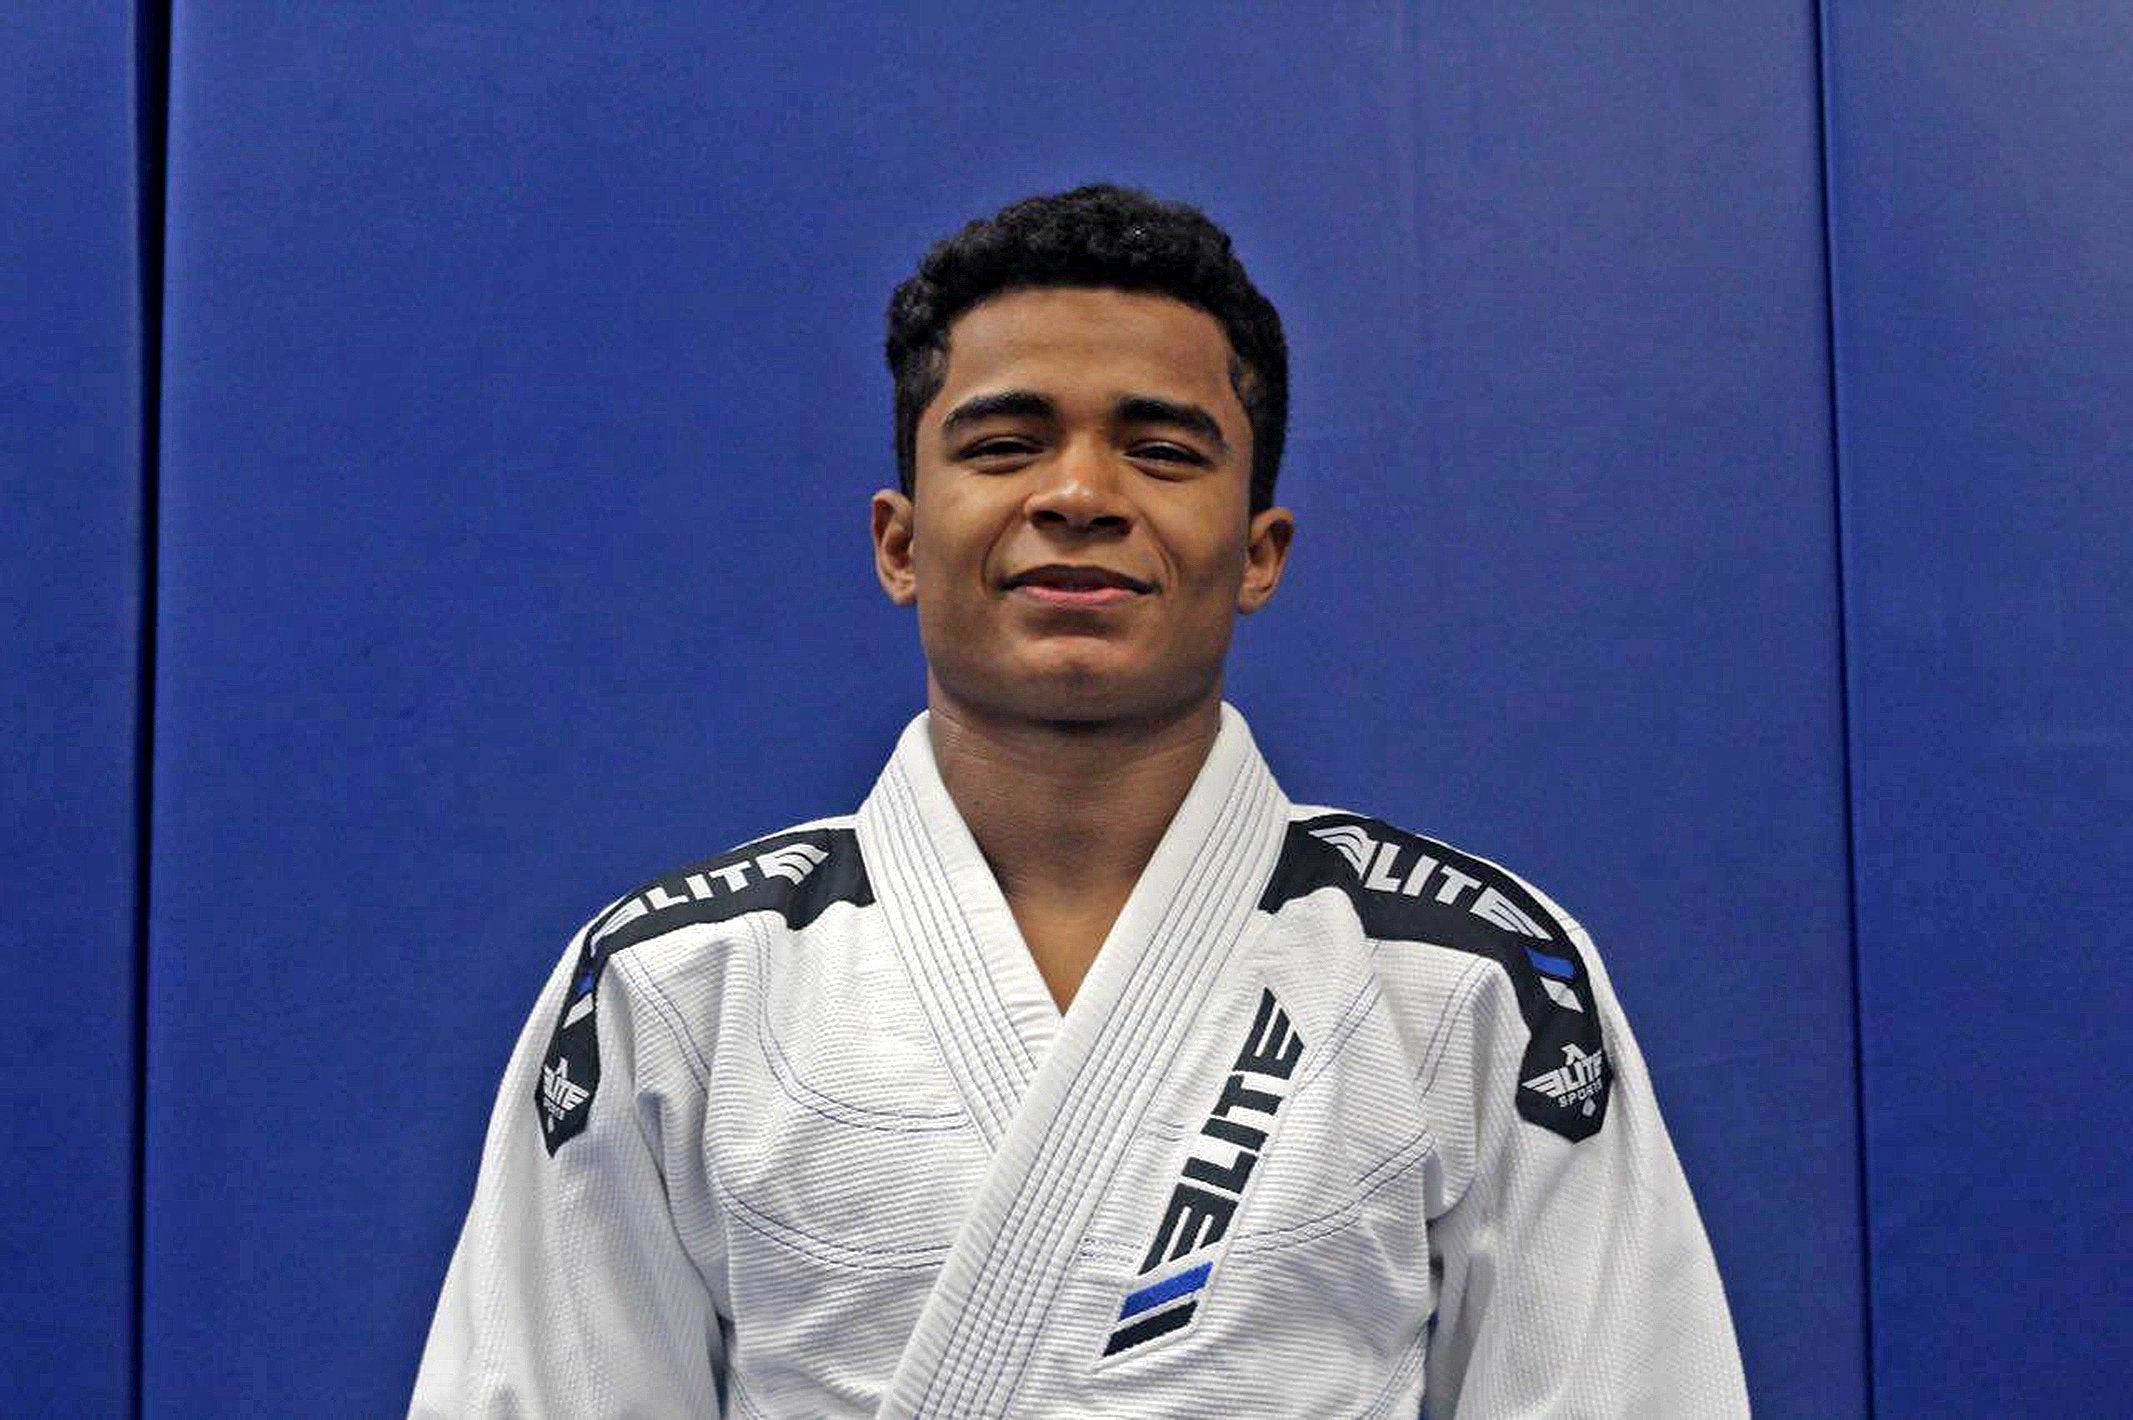 Elite Sports Team Elite Bjj Fighter Johnif de Oliveira Rocha  Image2